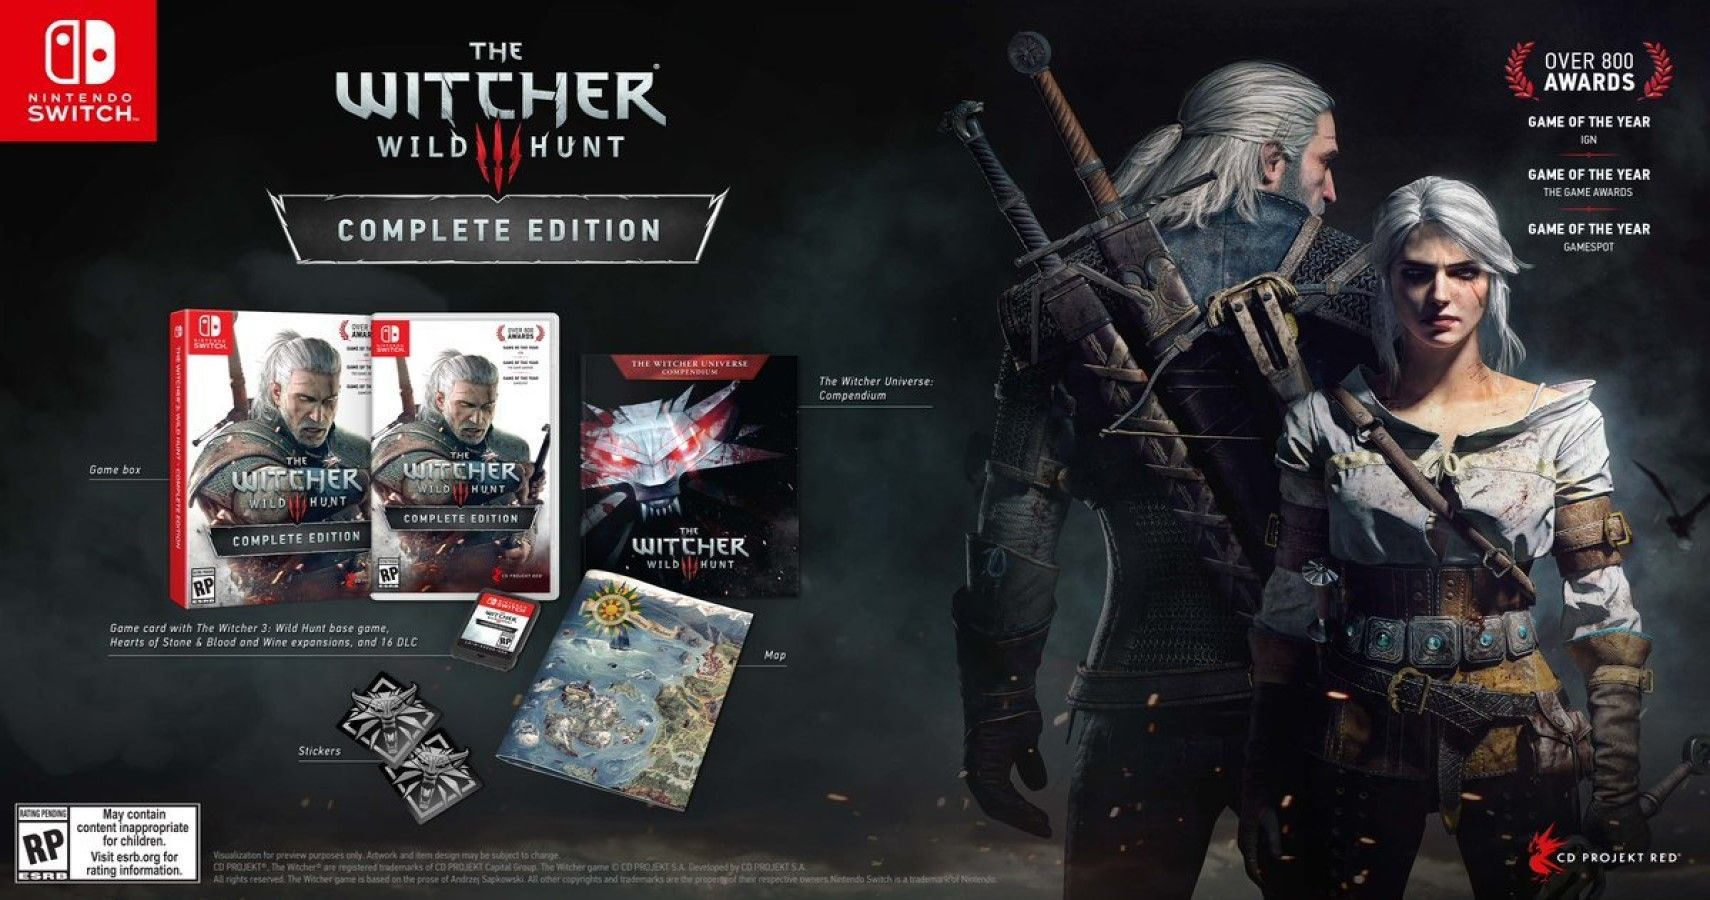 Czech Retailer Listing Shows The Witcher 3: Wild Hunt Could Soon Be Coming To The Switch